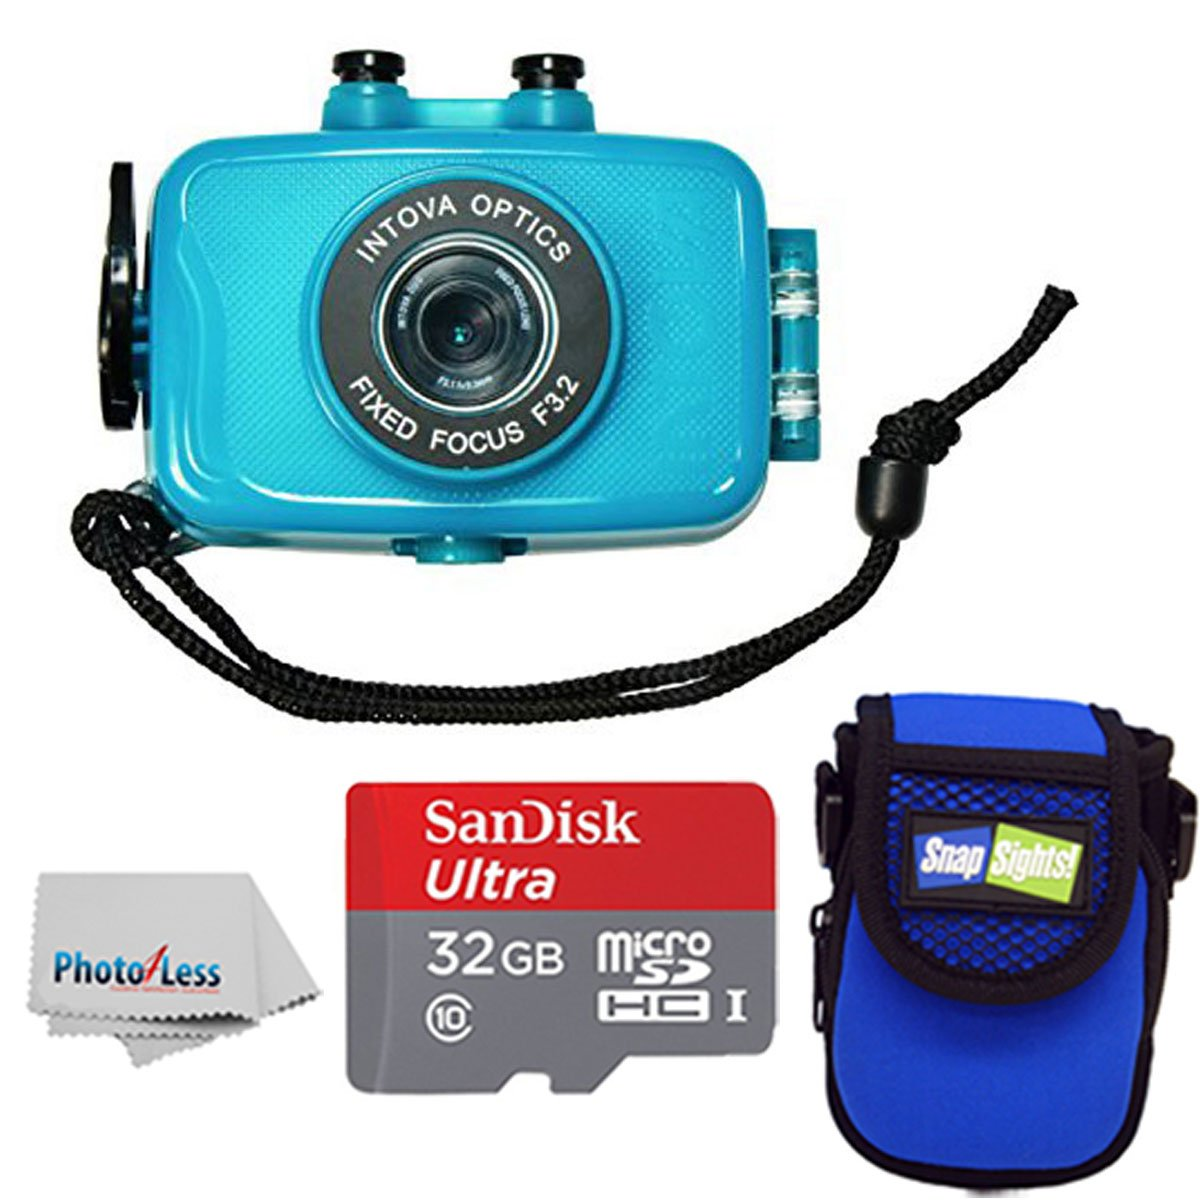 Intova Duo Waterproof HD POV Sports Video Action Camera With Compact Case + 32GB microSDHC UHS-I Card with Adapter + Clean Cloth (Aqua) by Intova